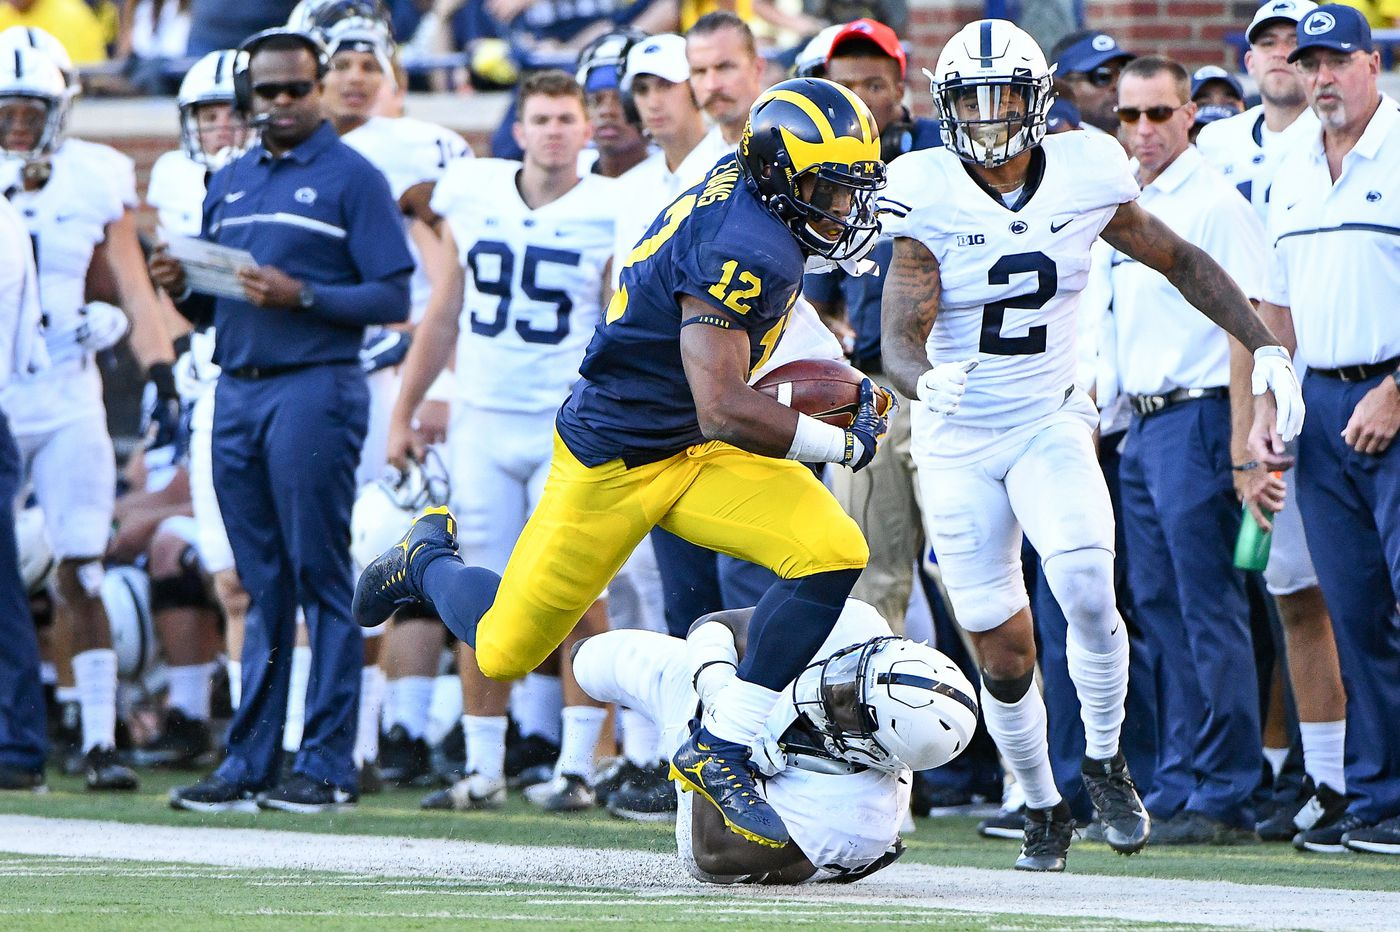 Penn State players not dwelling on last visit to Michigan's Big House